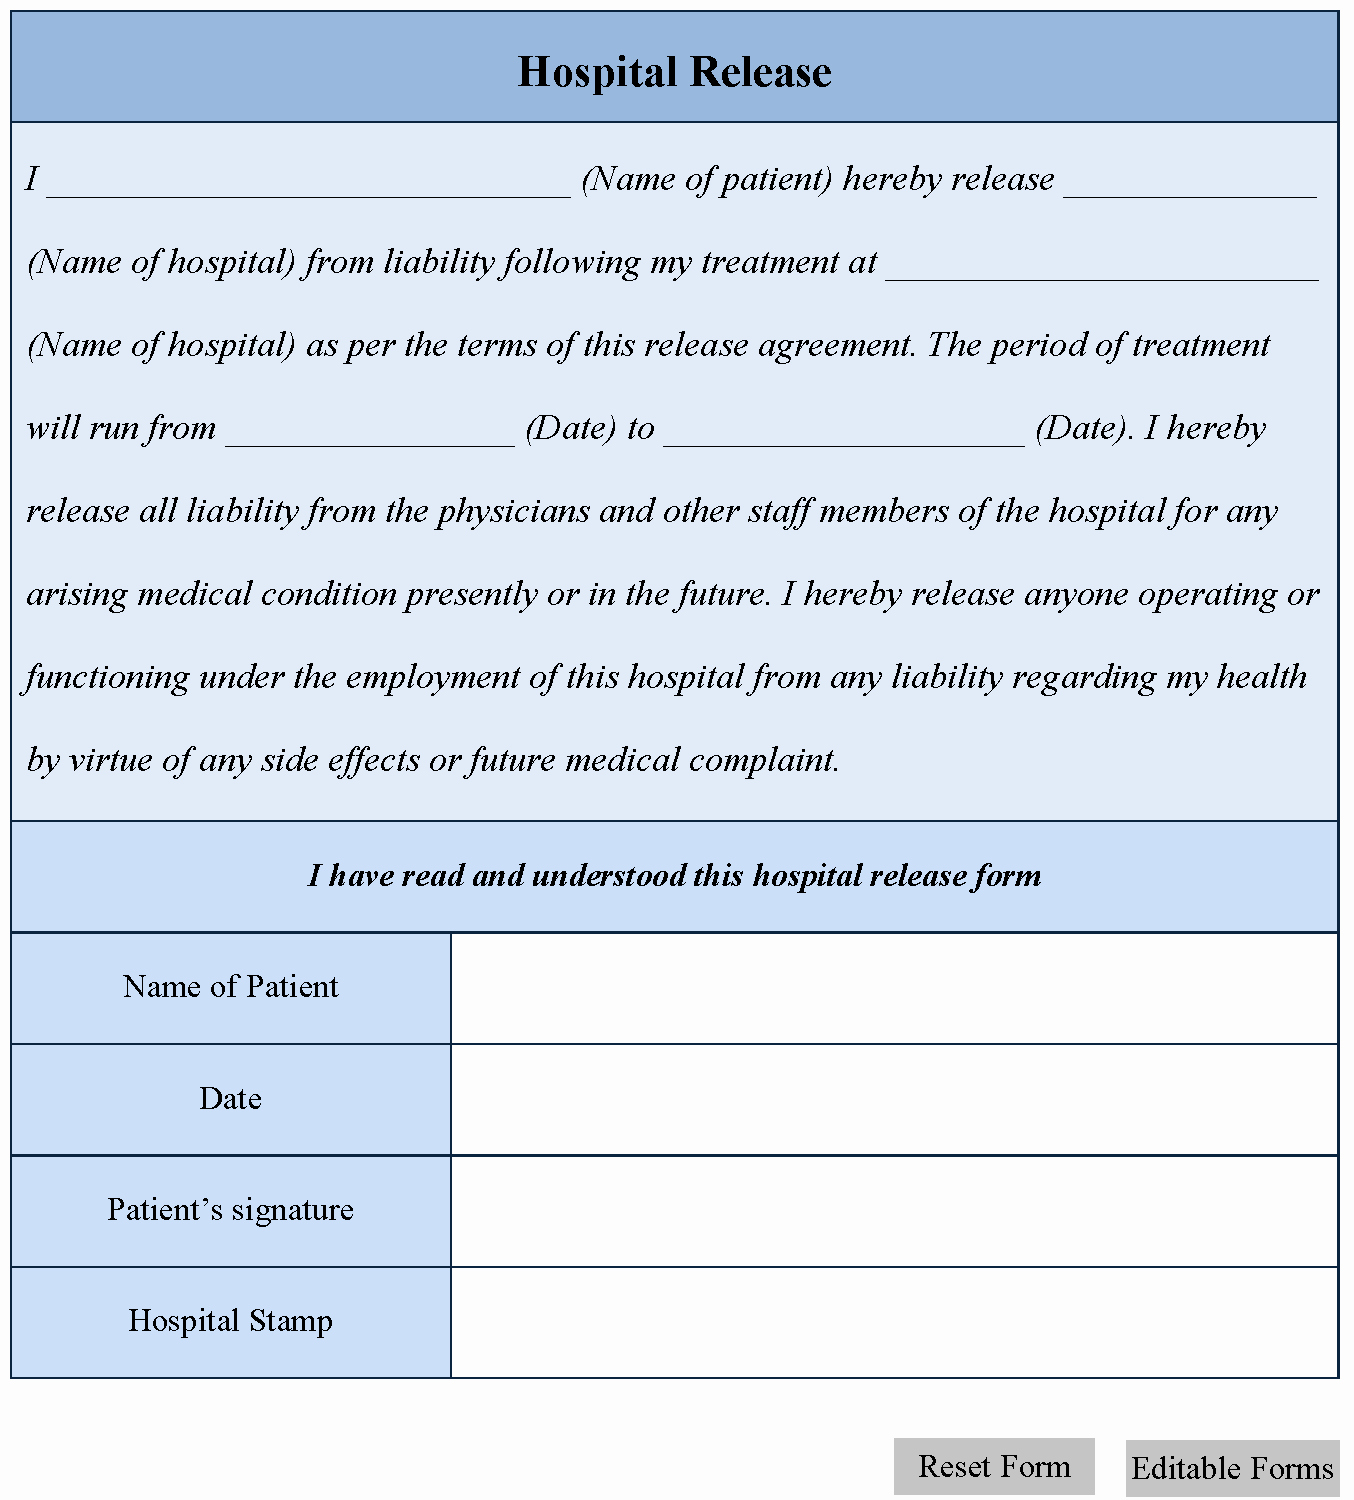 Hospital Release form Template Beautiful Hospital Release form